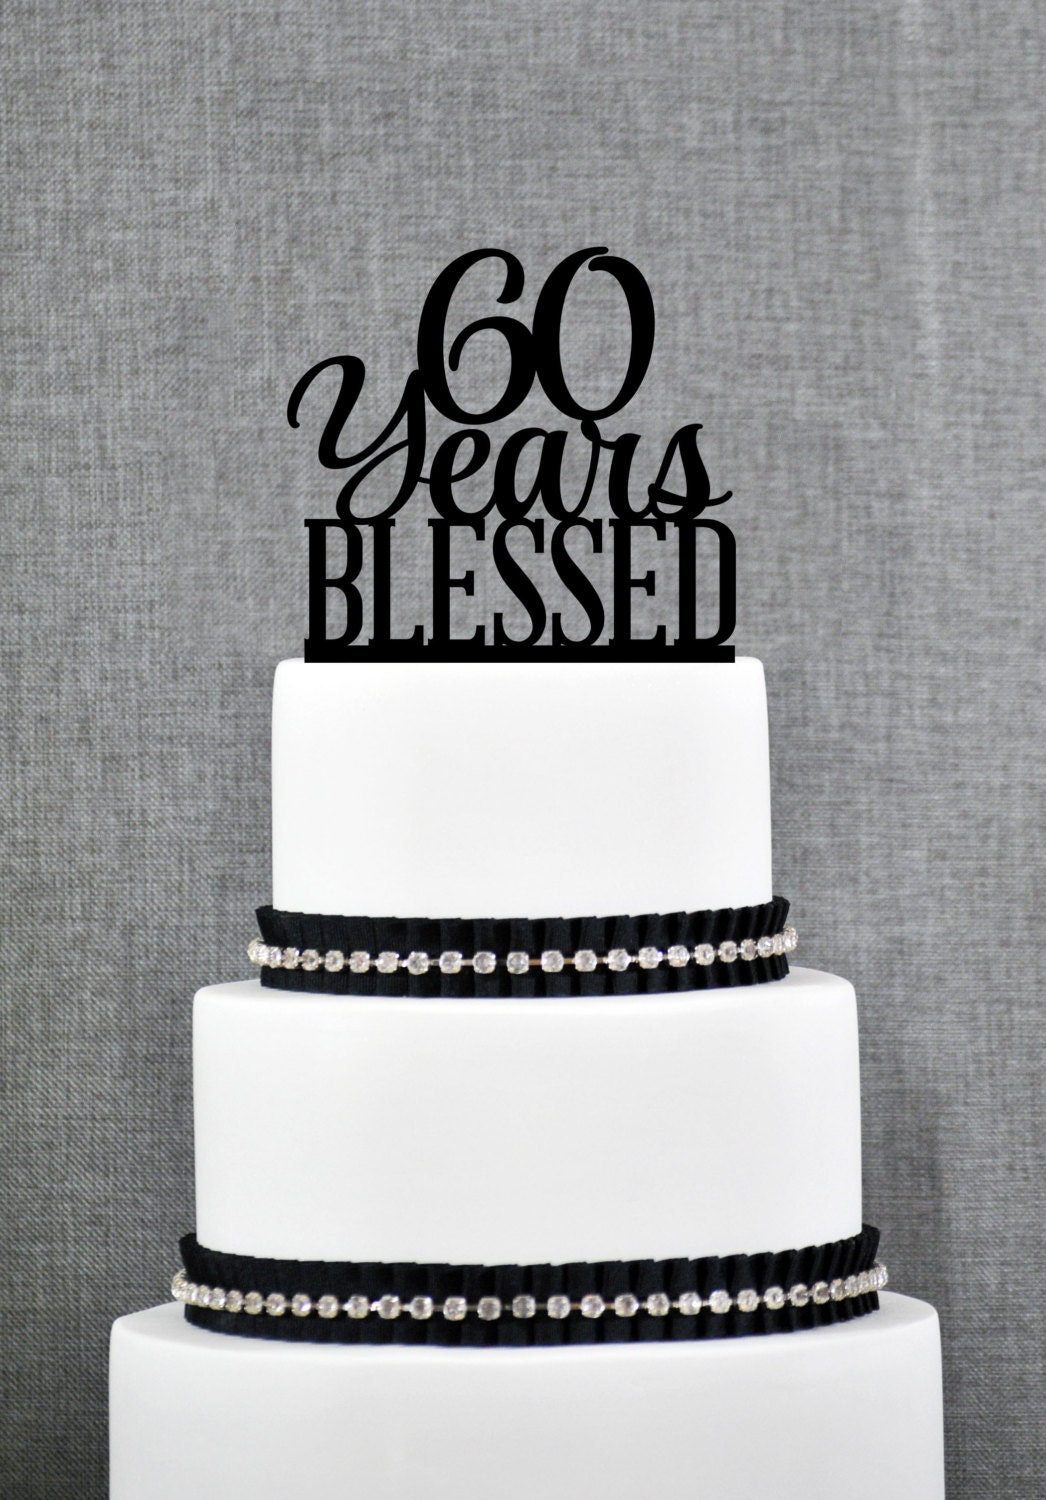 60 Years Blessed Cake Topper Classy 60th Birthday Cake